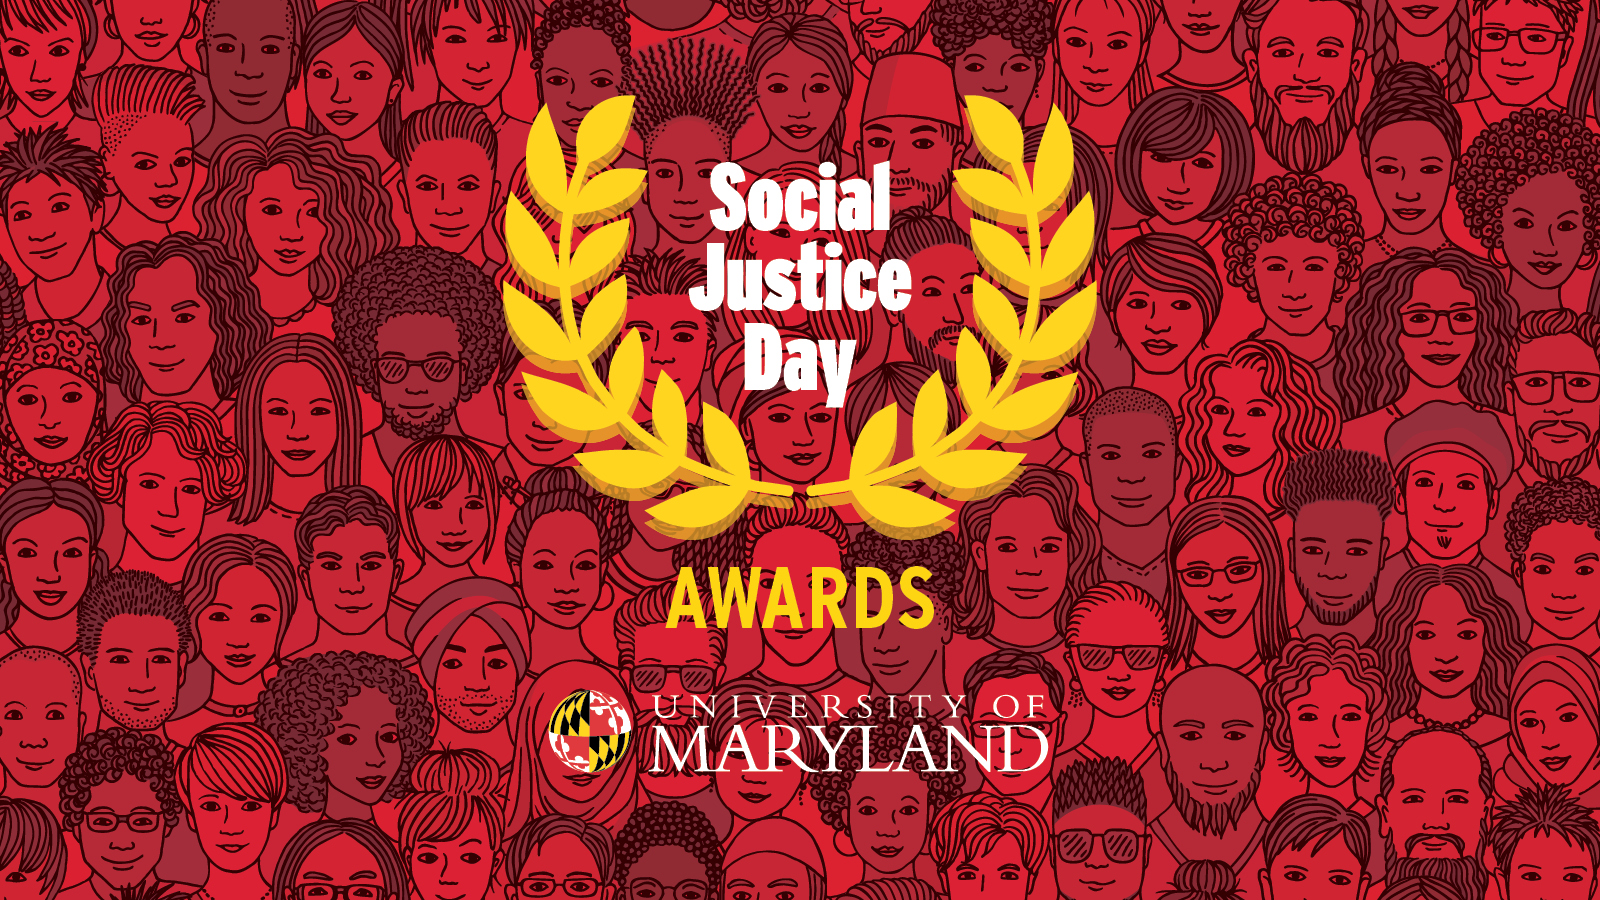 Social Justice Day 2019 Awards Inset